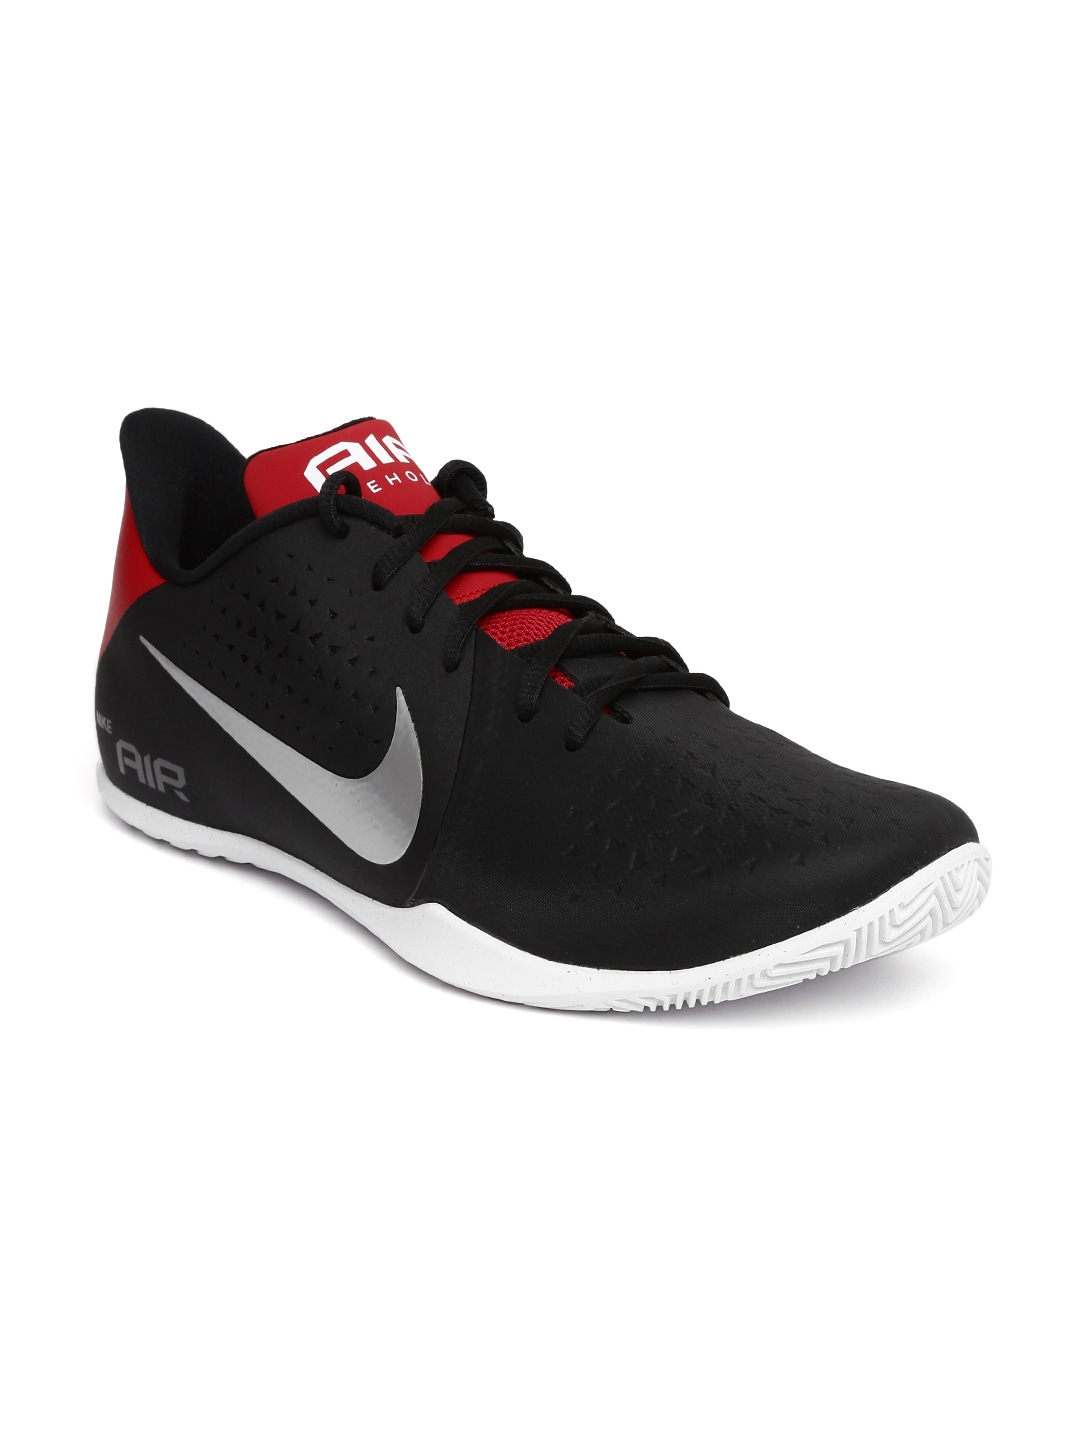 nike shoes white and black high top. nike shoes white and black high top 7